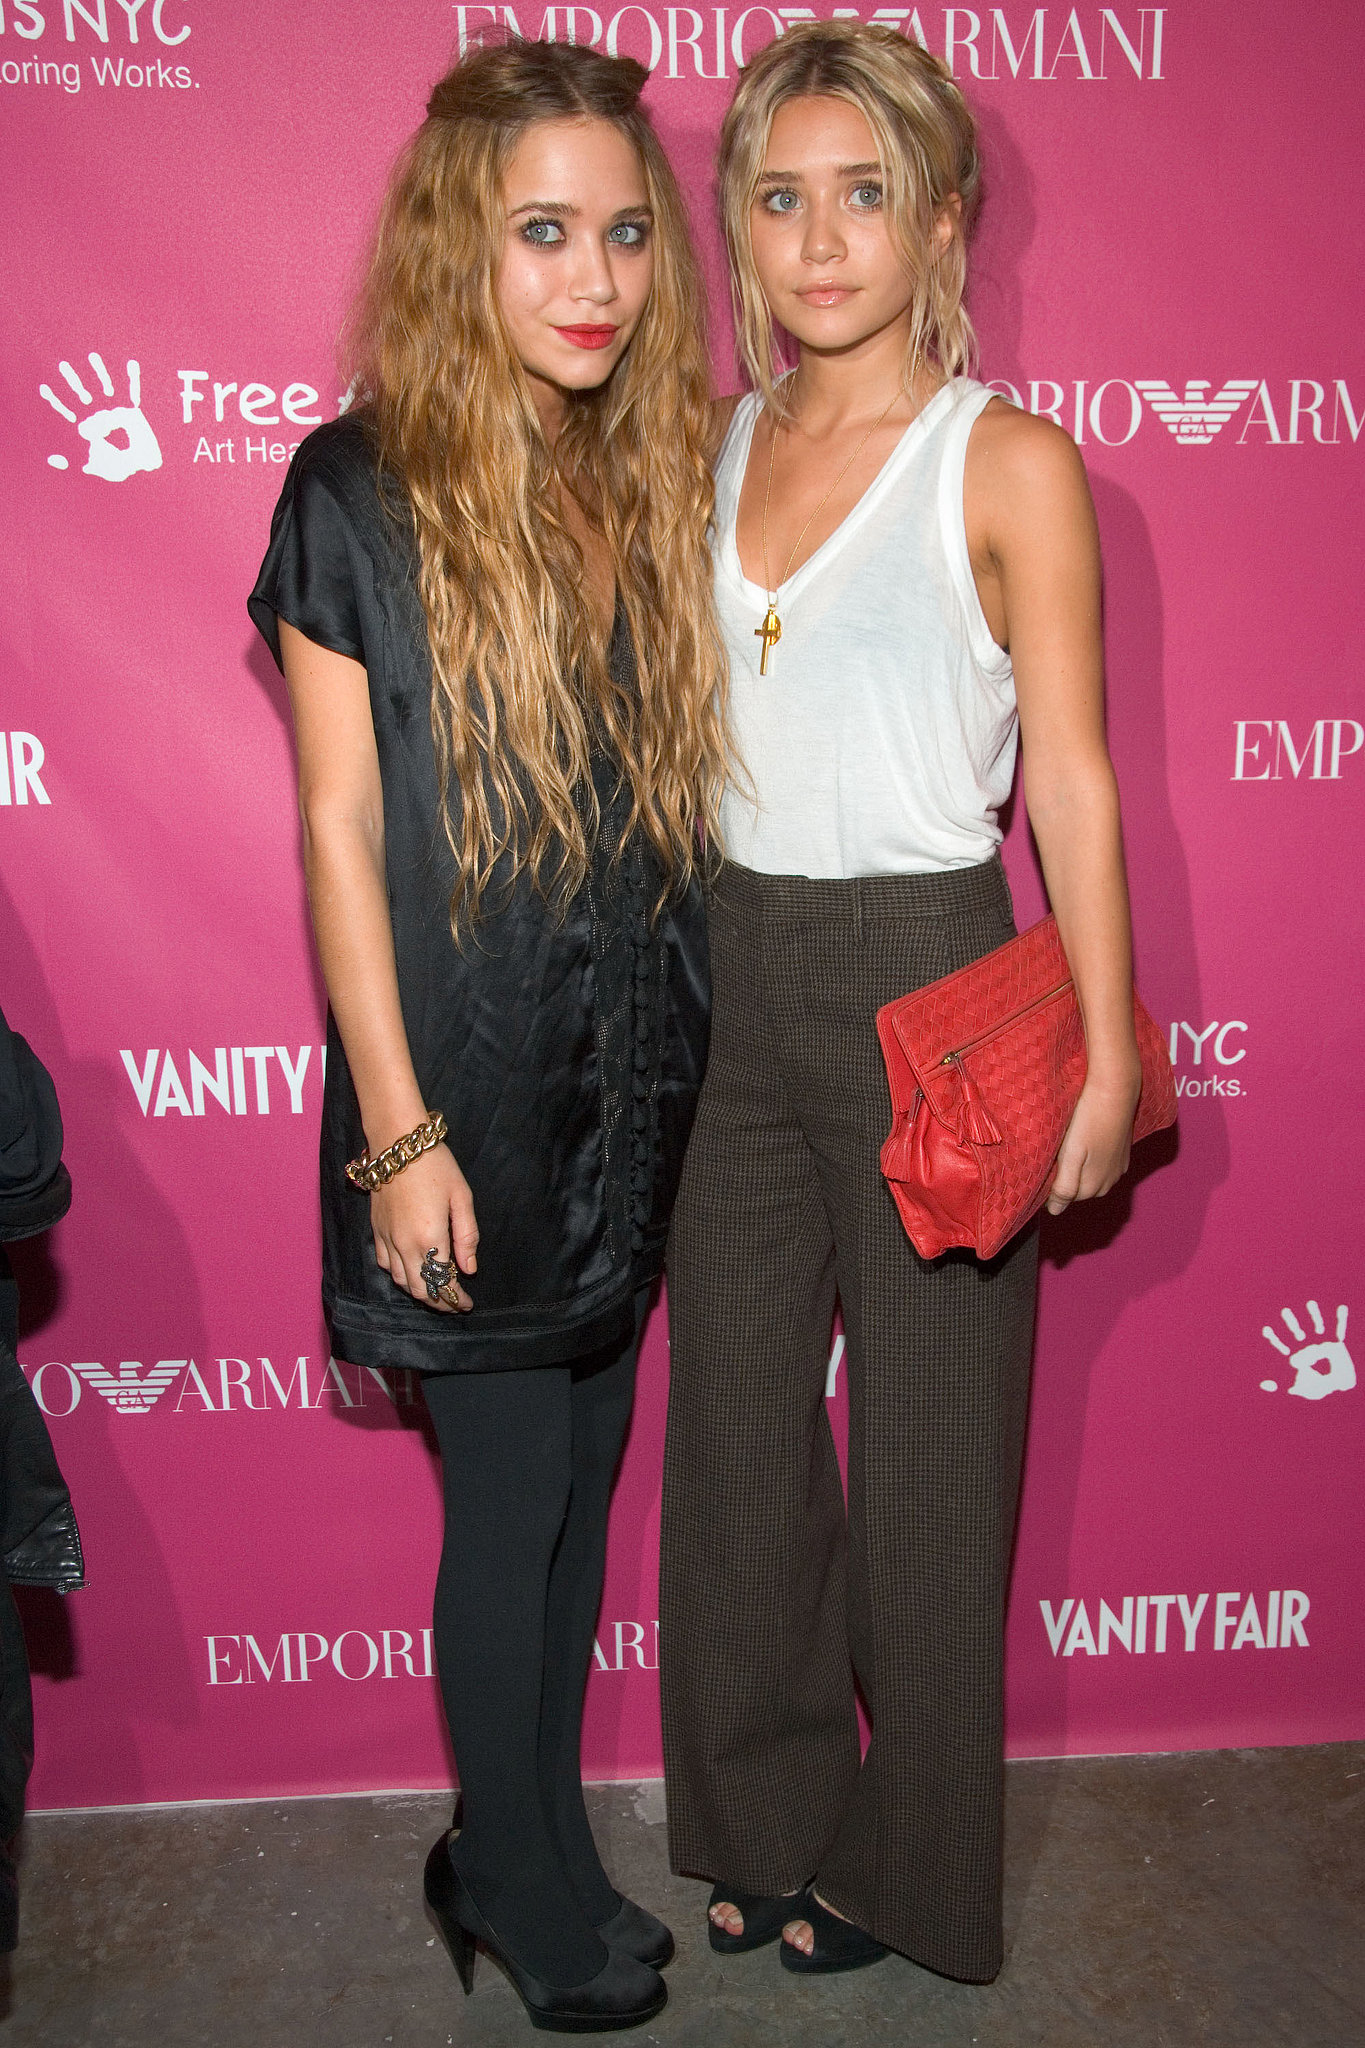 Twinning combo: Mary-Kate and Ashley showed yet another example of their fashion prowess, working Winter-ready looks for the seventh annual Art + Photography Auction Benefit in 2006.   Mary-Kate layered up in a silky tunic, opaque tights, and satin pumps. Ashley tucked a fitted white tank into high-waisted herringbone trousers, then finished off with a woven red clutch.